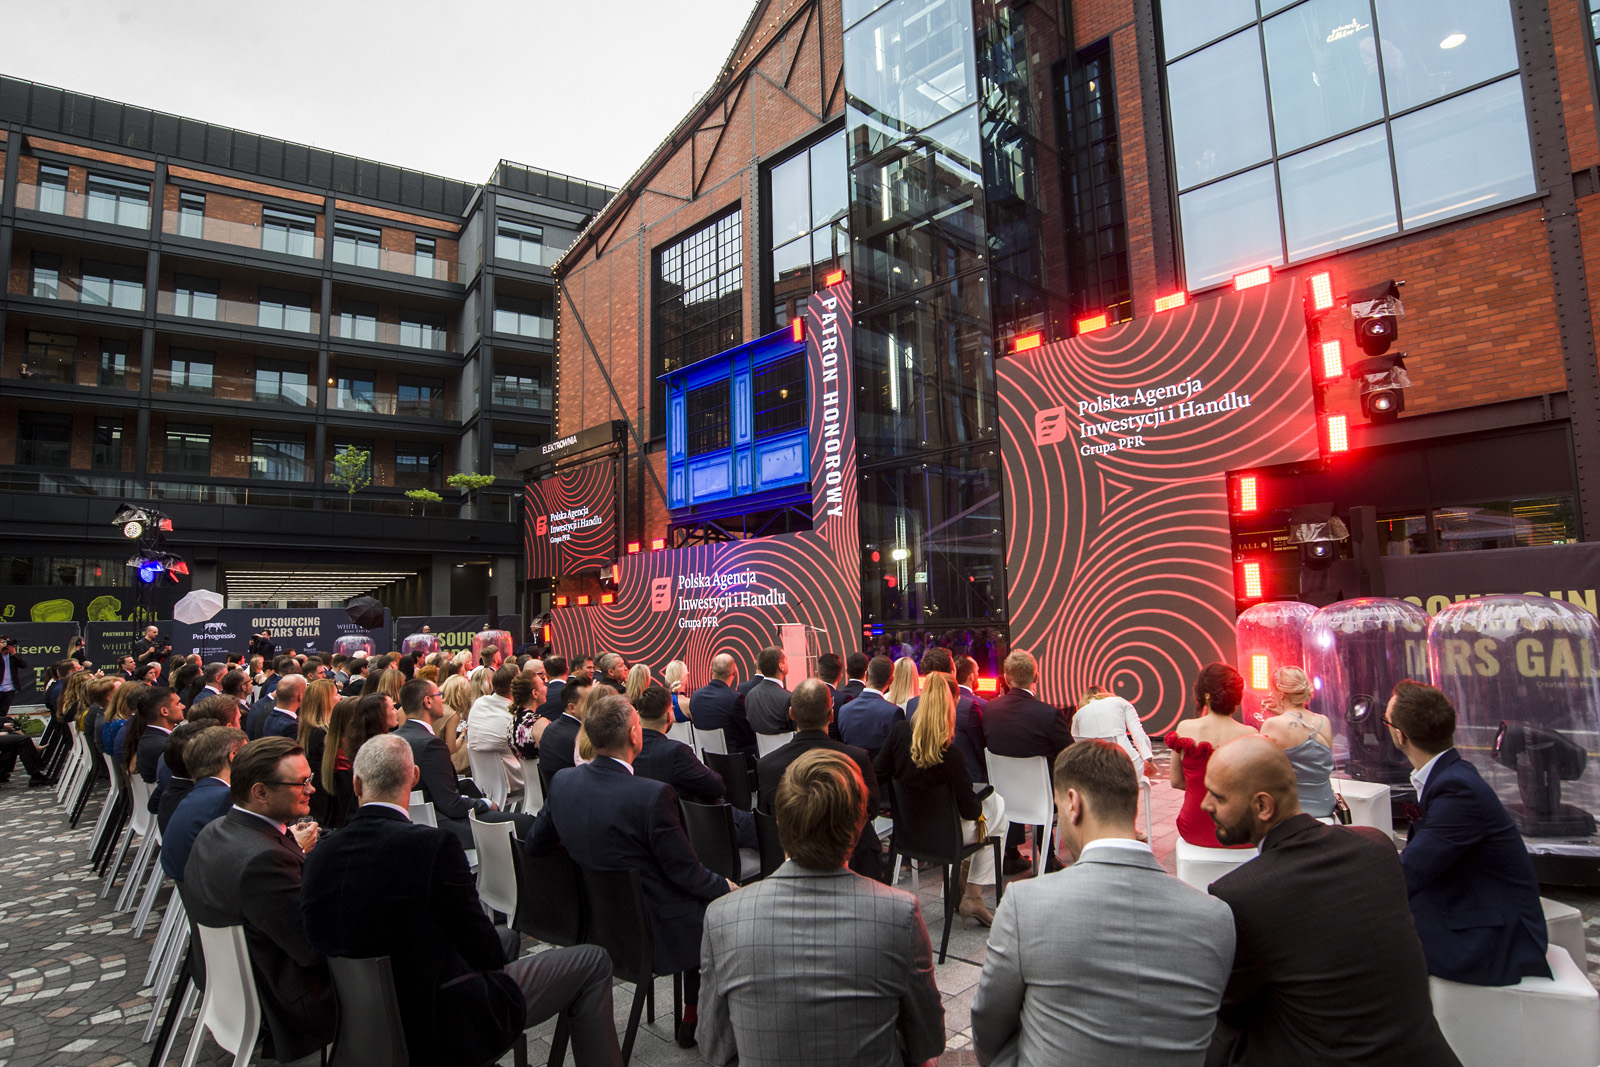 Outsourcing Stars Gala 2021